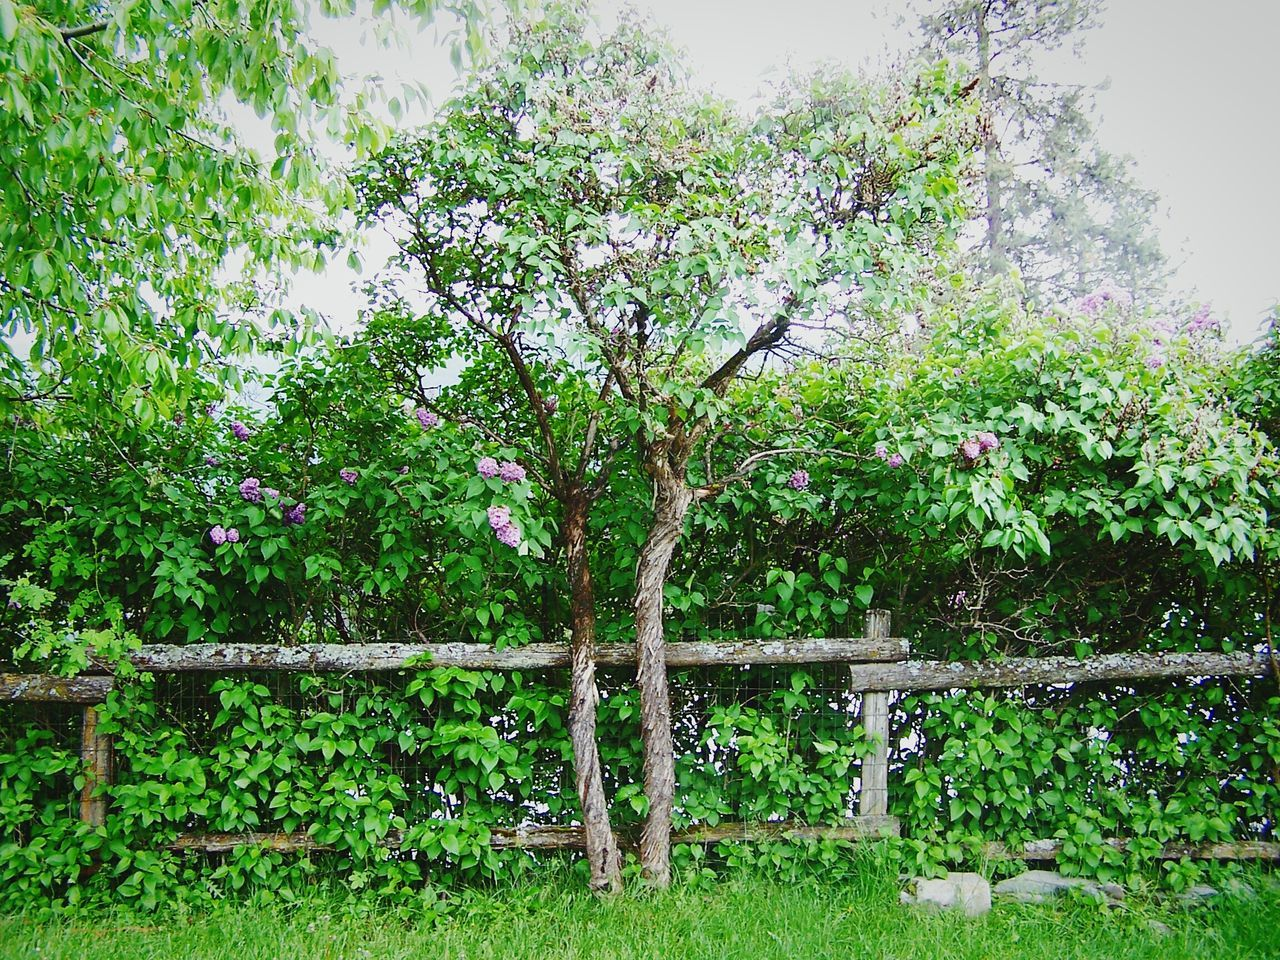 Wooden Fence Small Tree Calming Pleasing The Essence Of Summer Montana Nature's Diversities Montana Usa Purple Flowers Magical